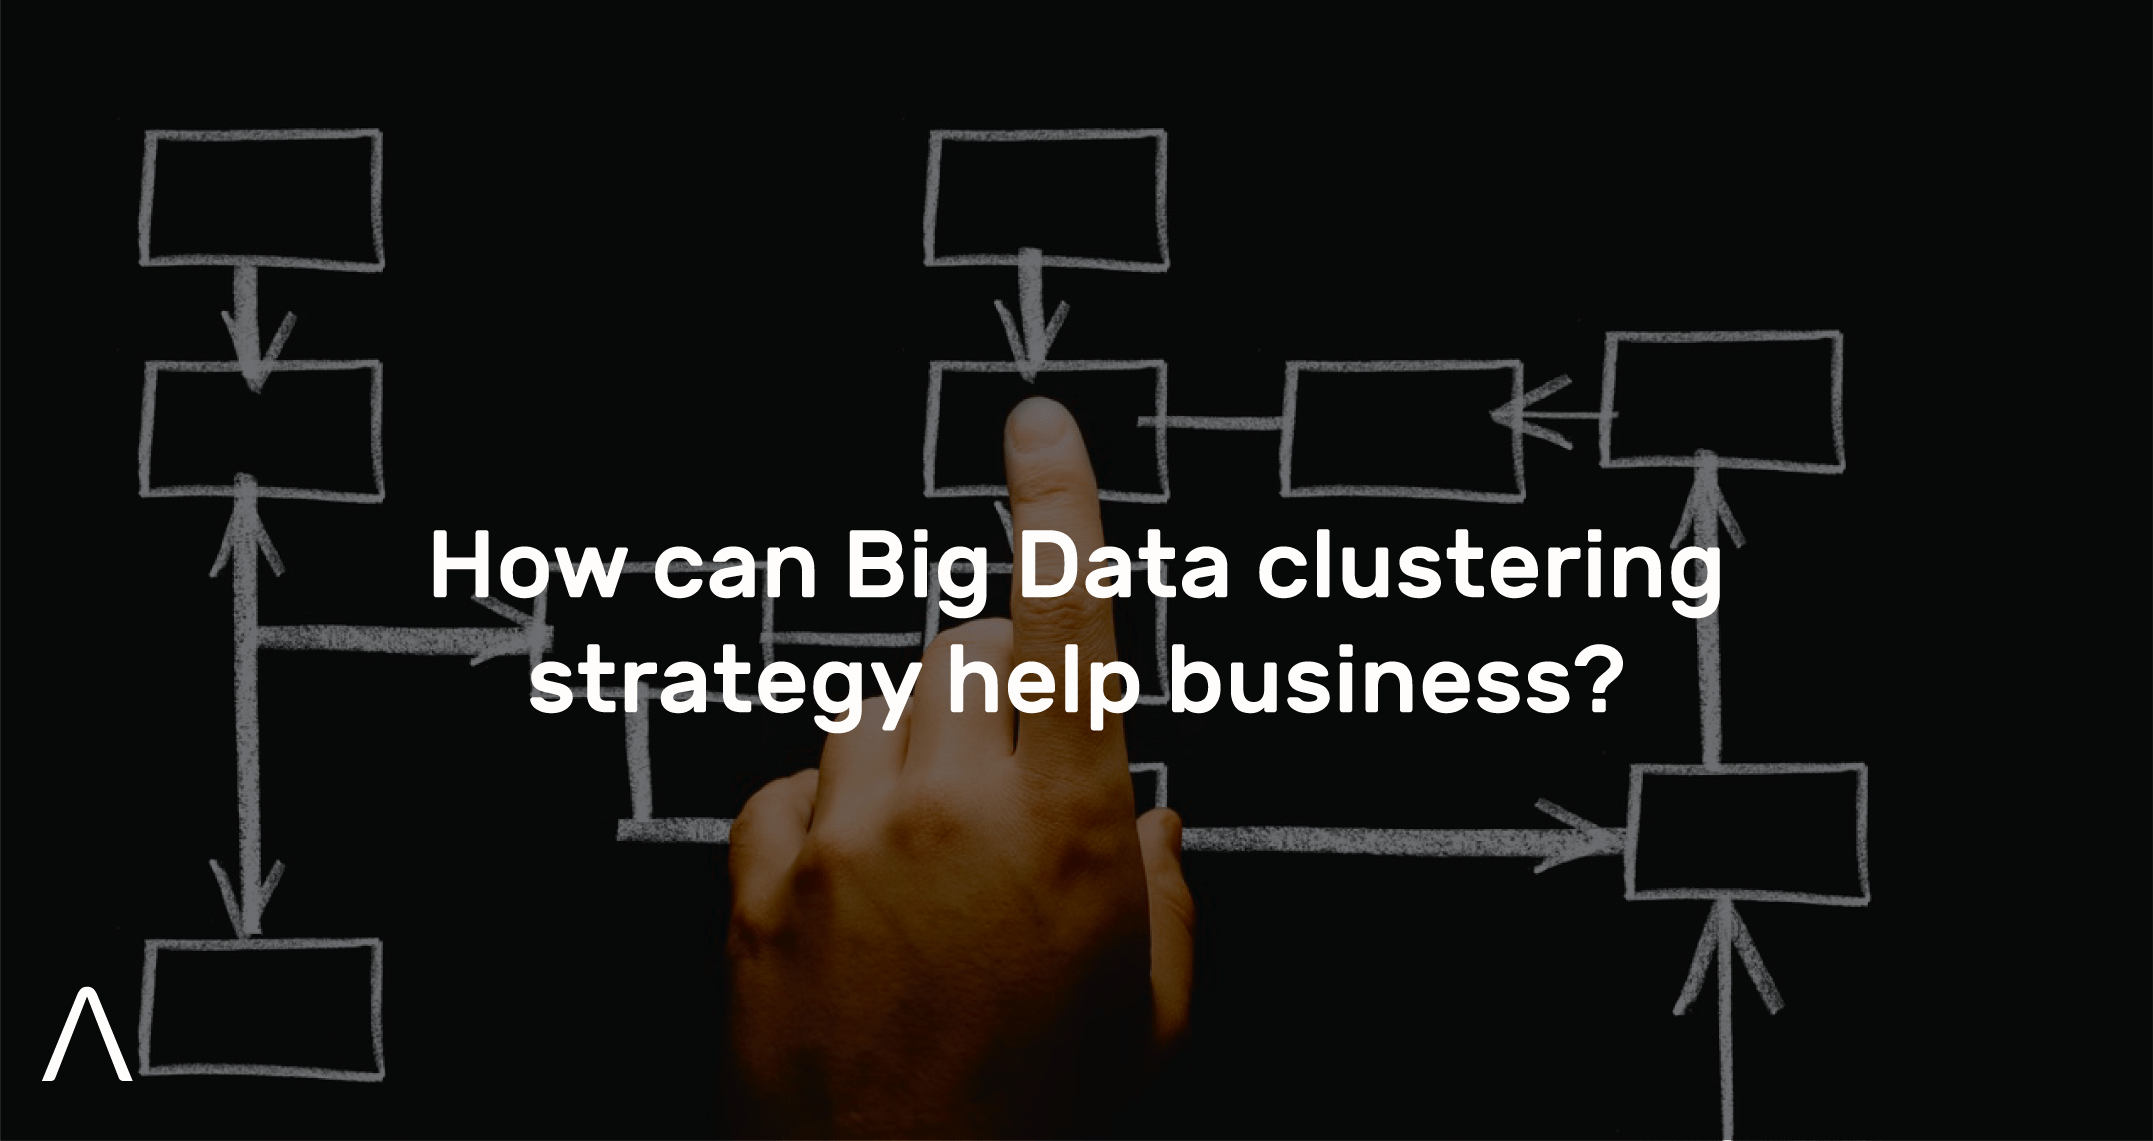 How can Big Data clustering strategy help business?